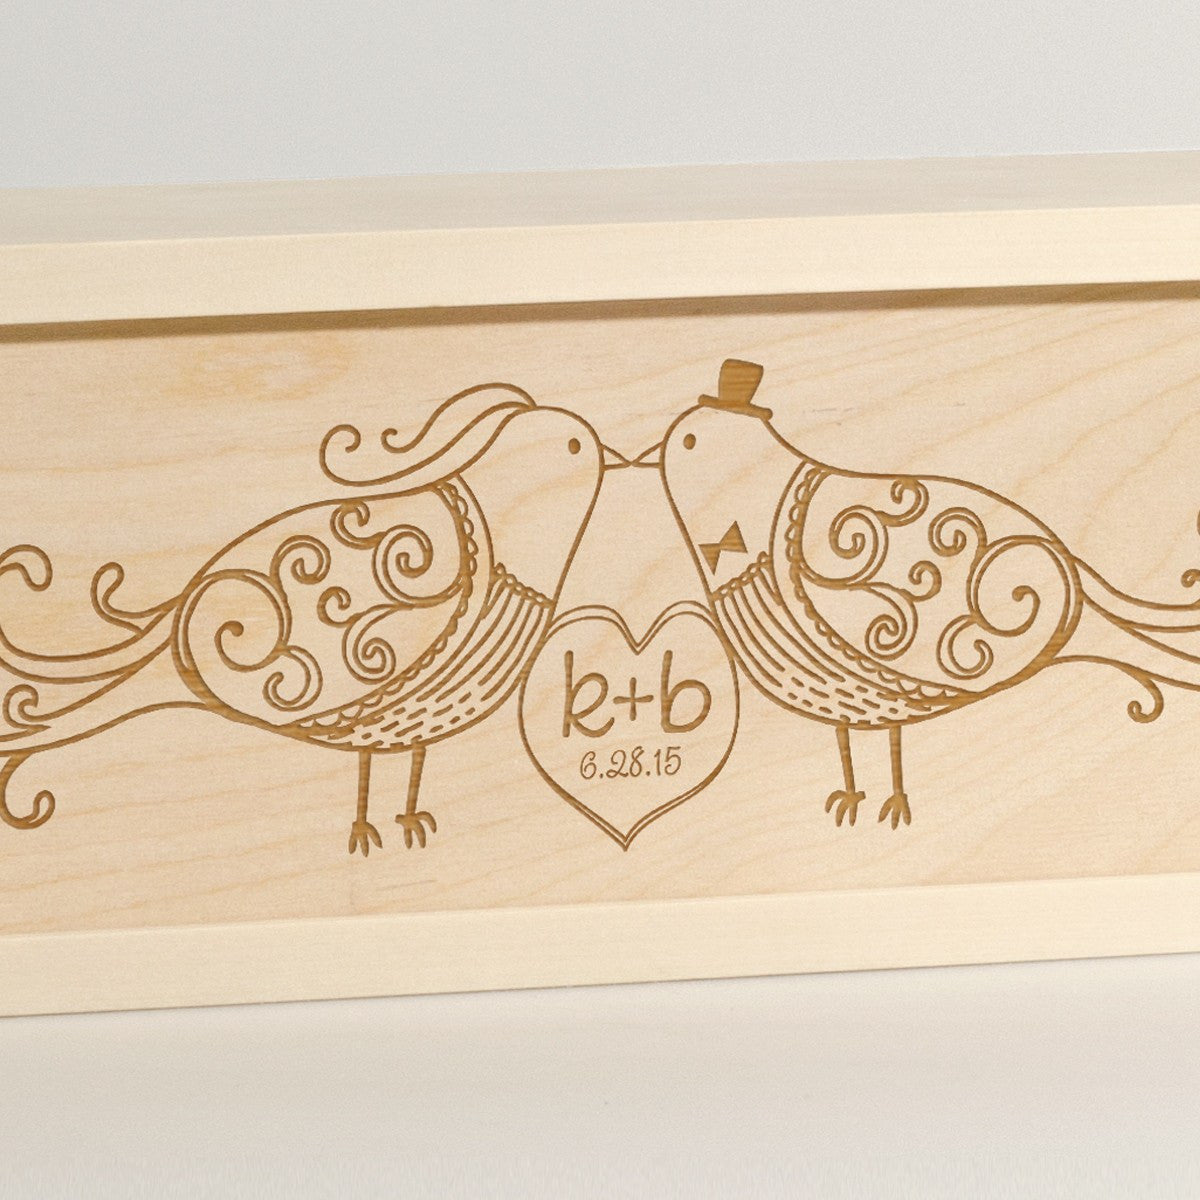 Fly Away With Me - Wedding Wine Box - Detail Image